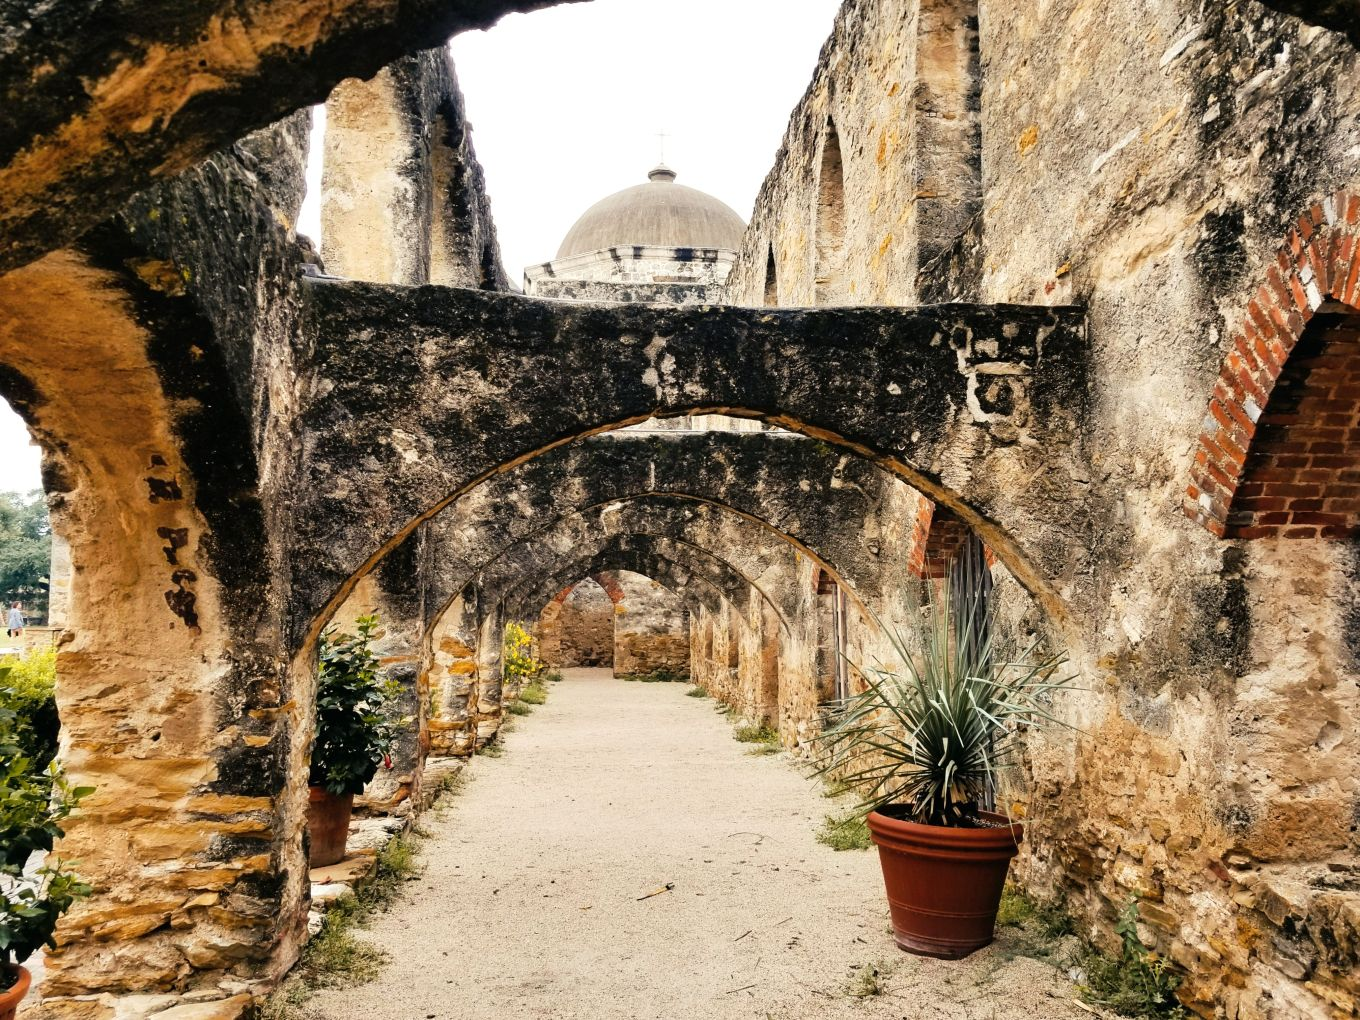 Archways of Mission San Jose in San Antonio